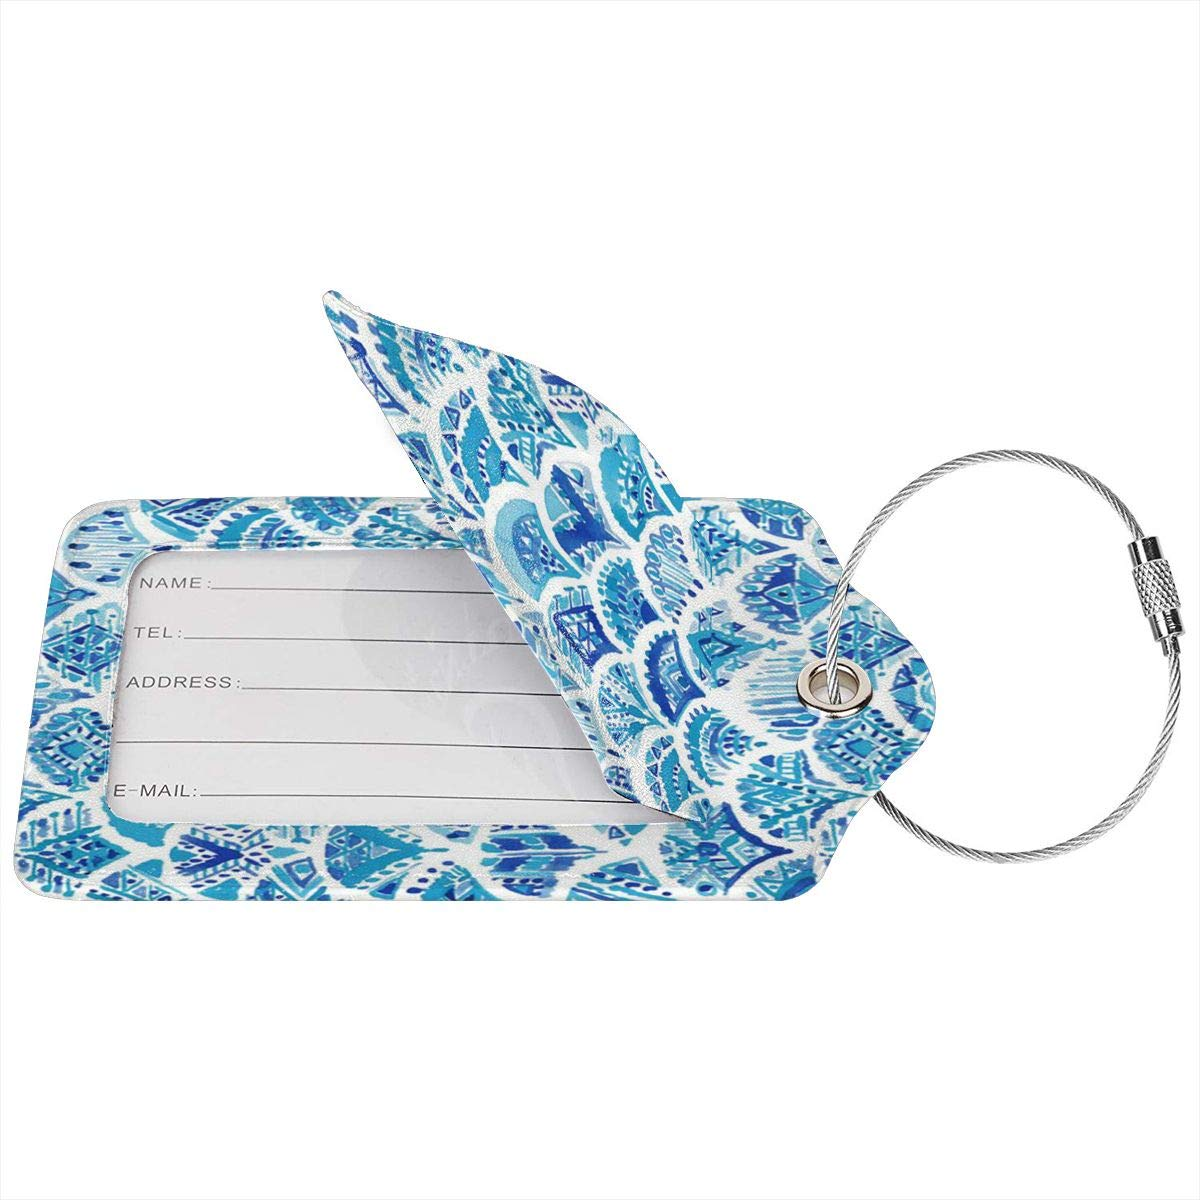 Hip Hop Tie-Dyed Hipster Colorful Luggage Tags With Full Back Privacy Cover W//Steel Loops